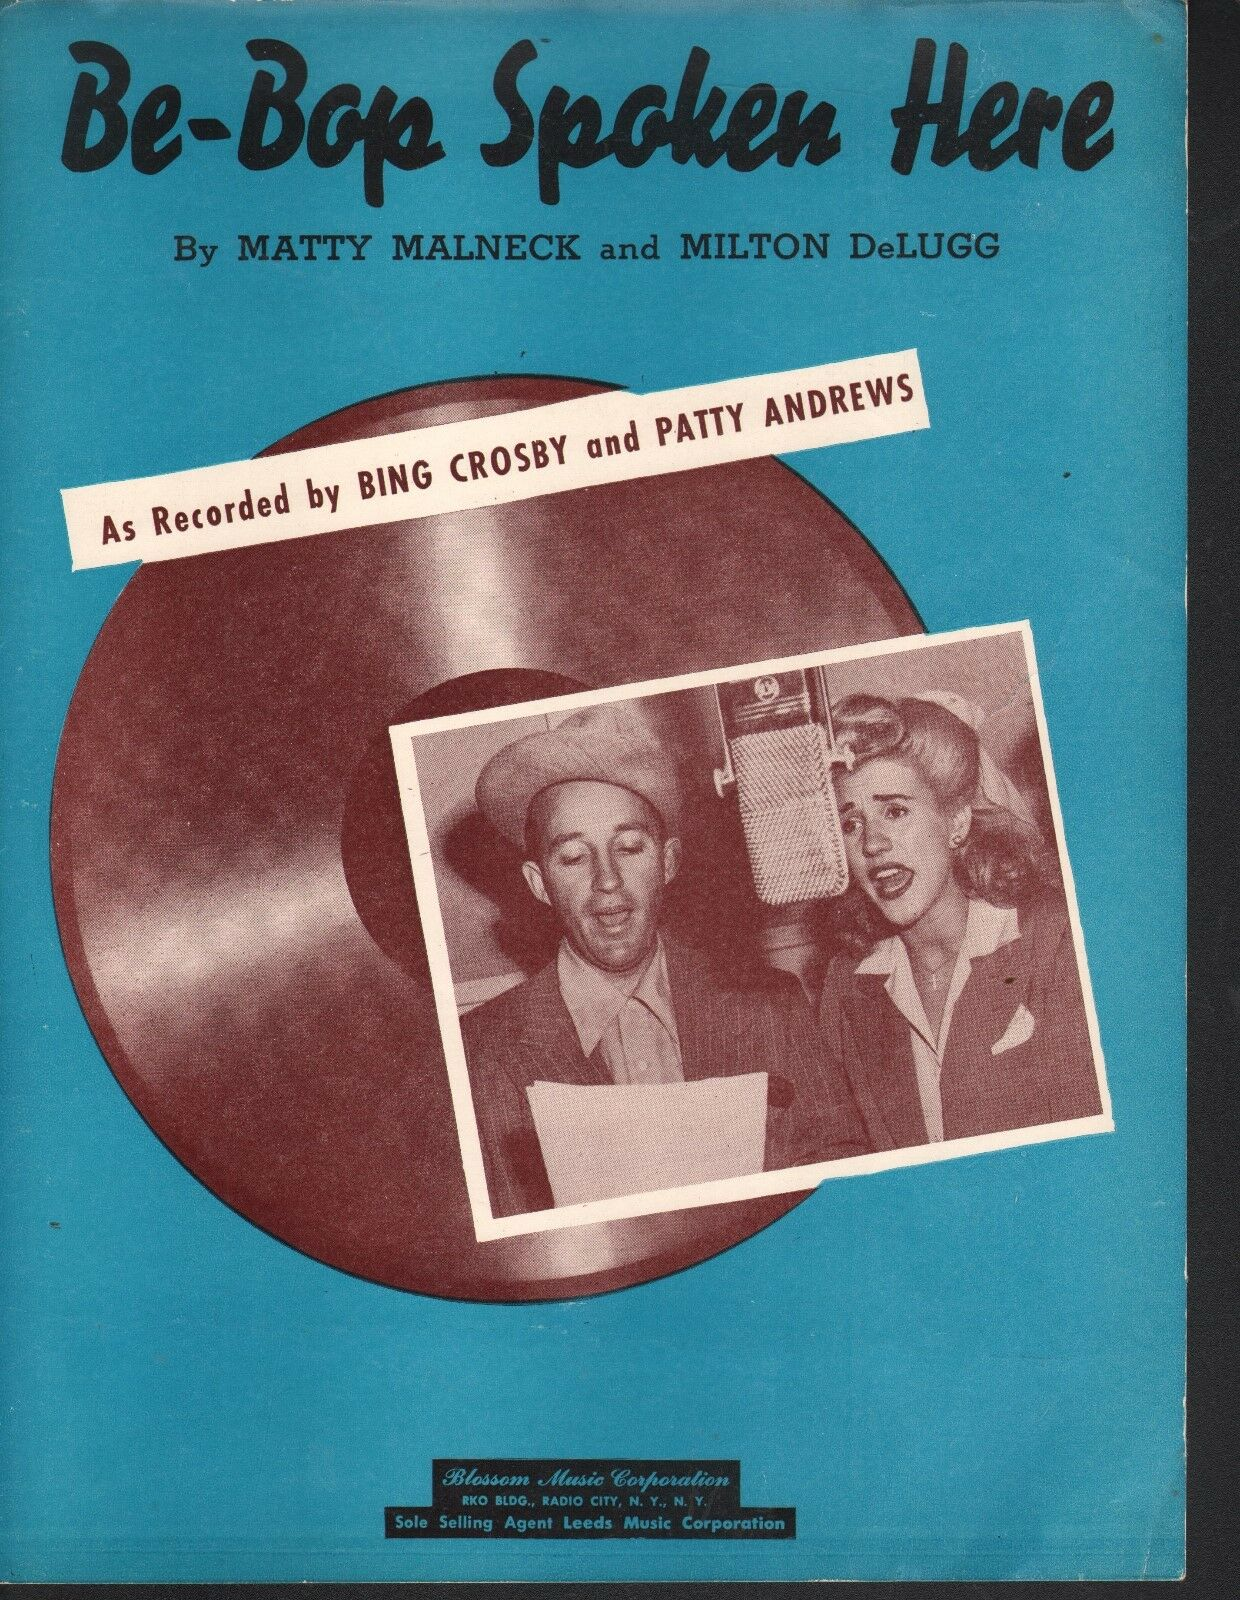 Be Bop Spoken Here 1949 Bing Crosby Patty Andrews Sheet Music